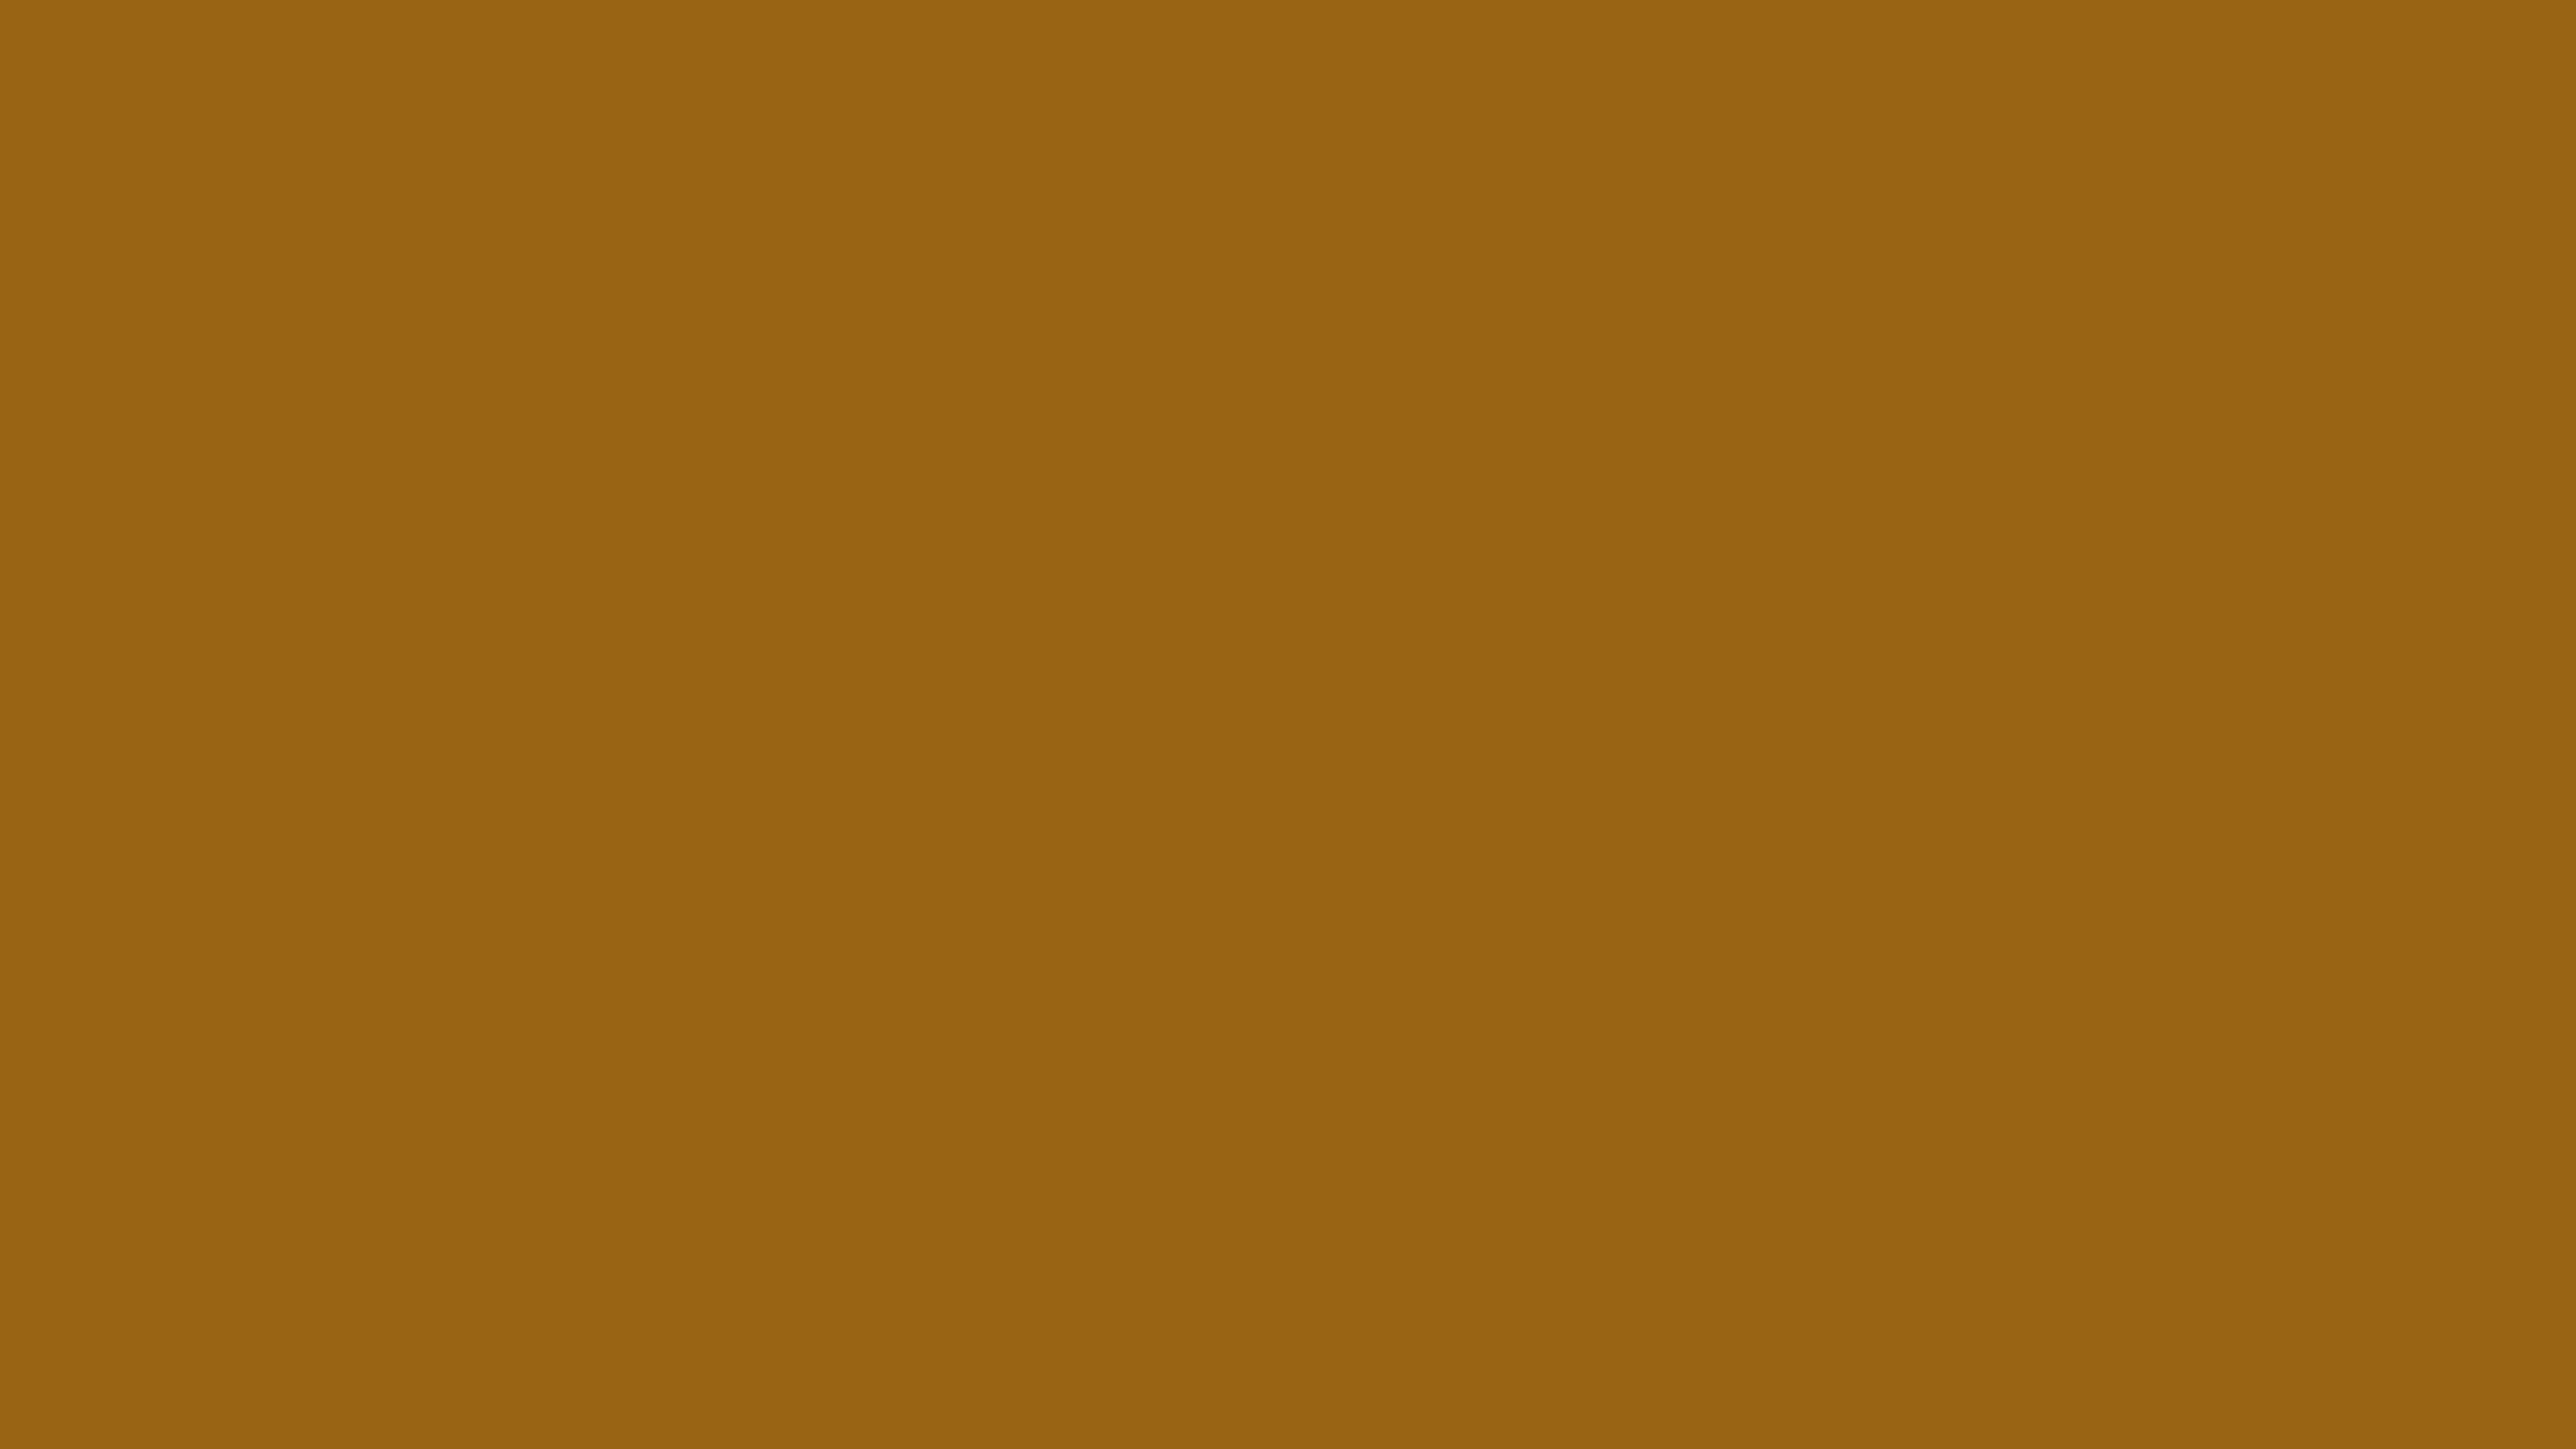 3840x2160 Golden Brown Solid Color Background